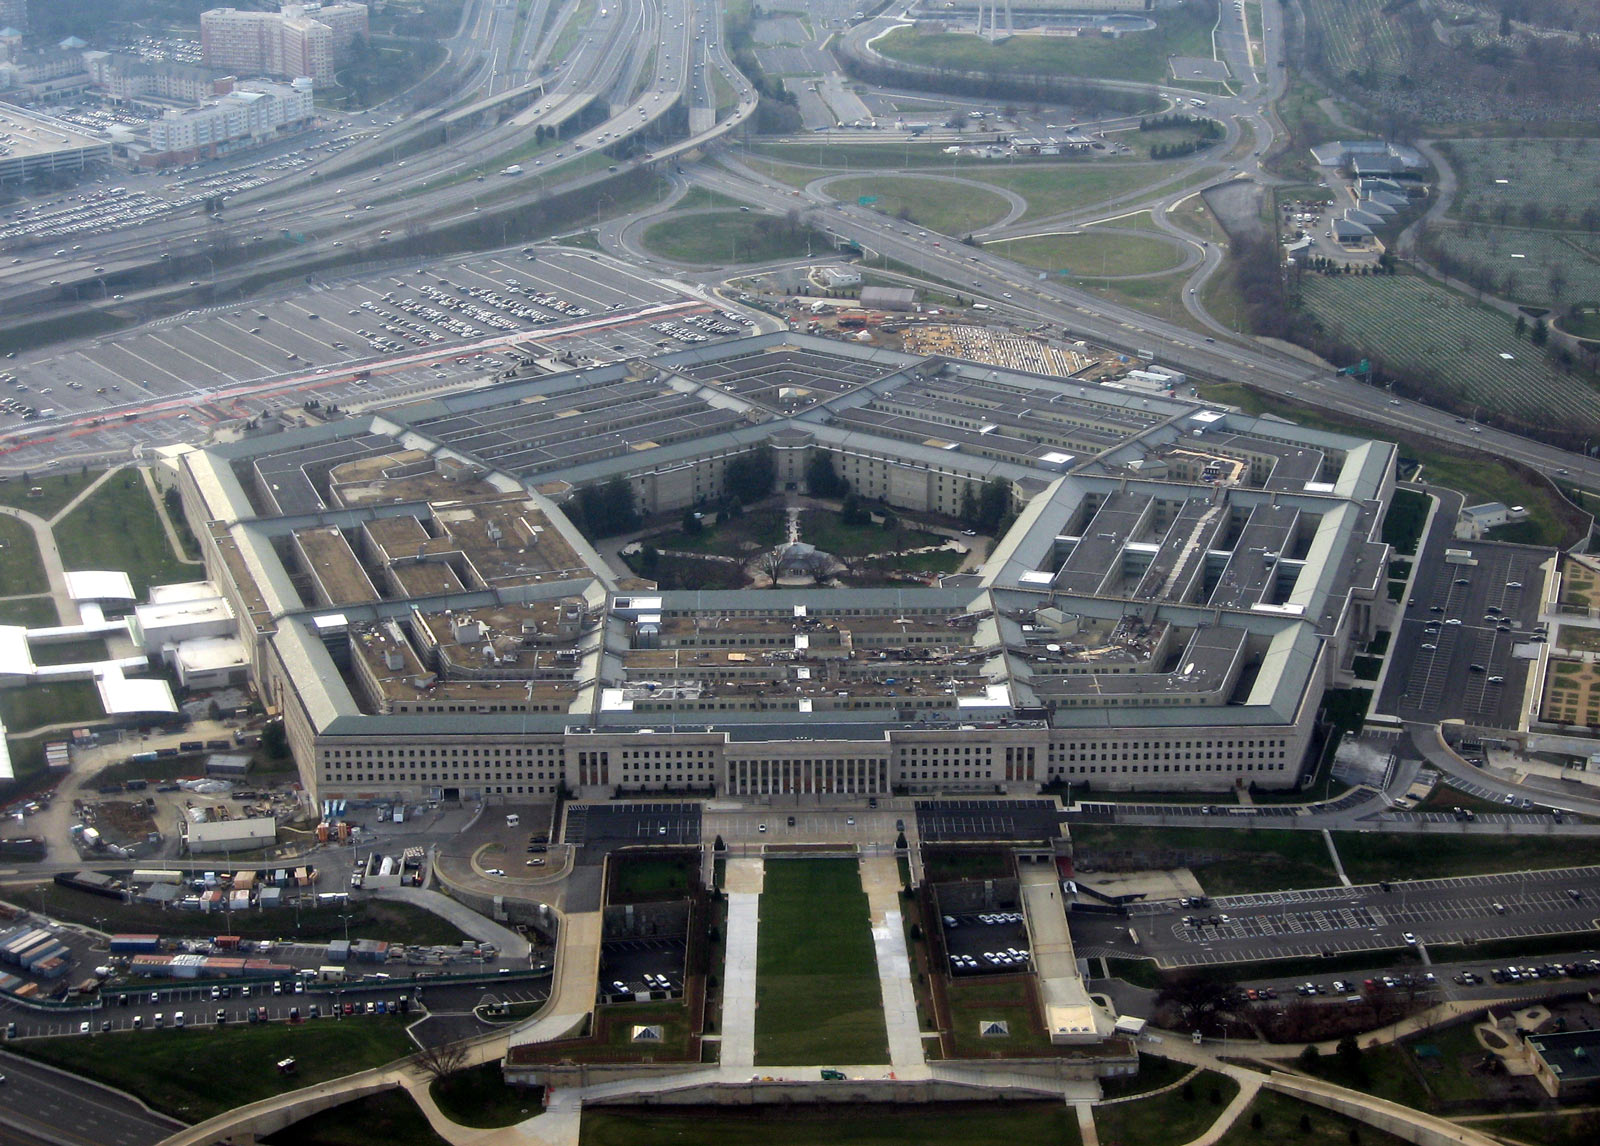 Can I Tour the Pentagon? | Washington.org Map Of Pentagon Dc on pentagon blueprints, pentagon explosion, pentagon police officer, pentagon building before 9 11, pentagon attack, pentagon diagram, pentagon flag, pentagon building history, pentagon missile,